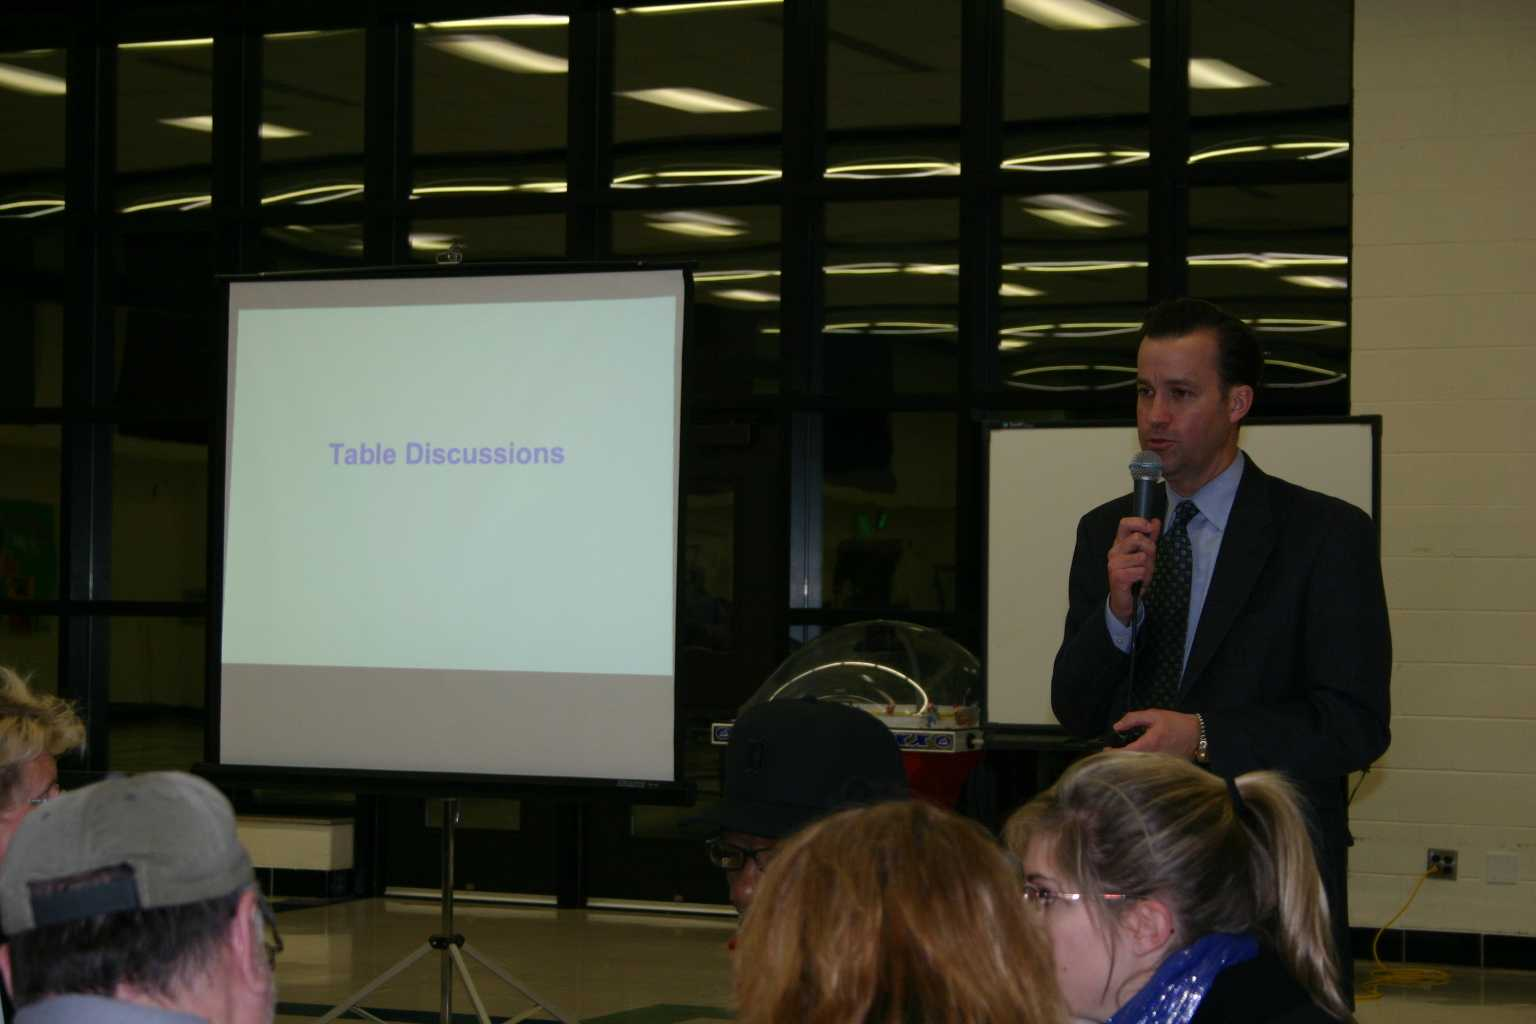 Dr. Roberts discusses the proposed budget cuts at a budget forum meeting on January 14th.